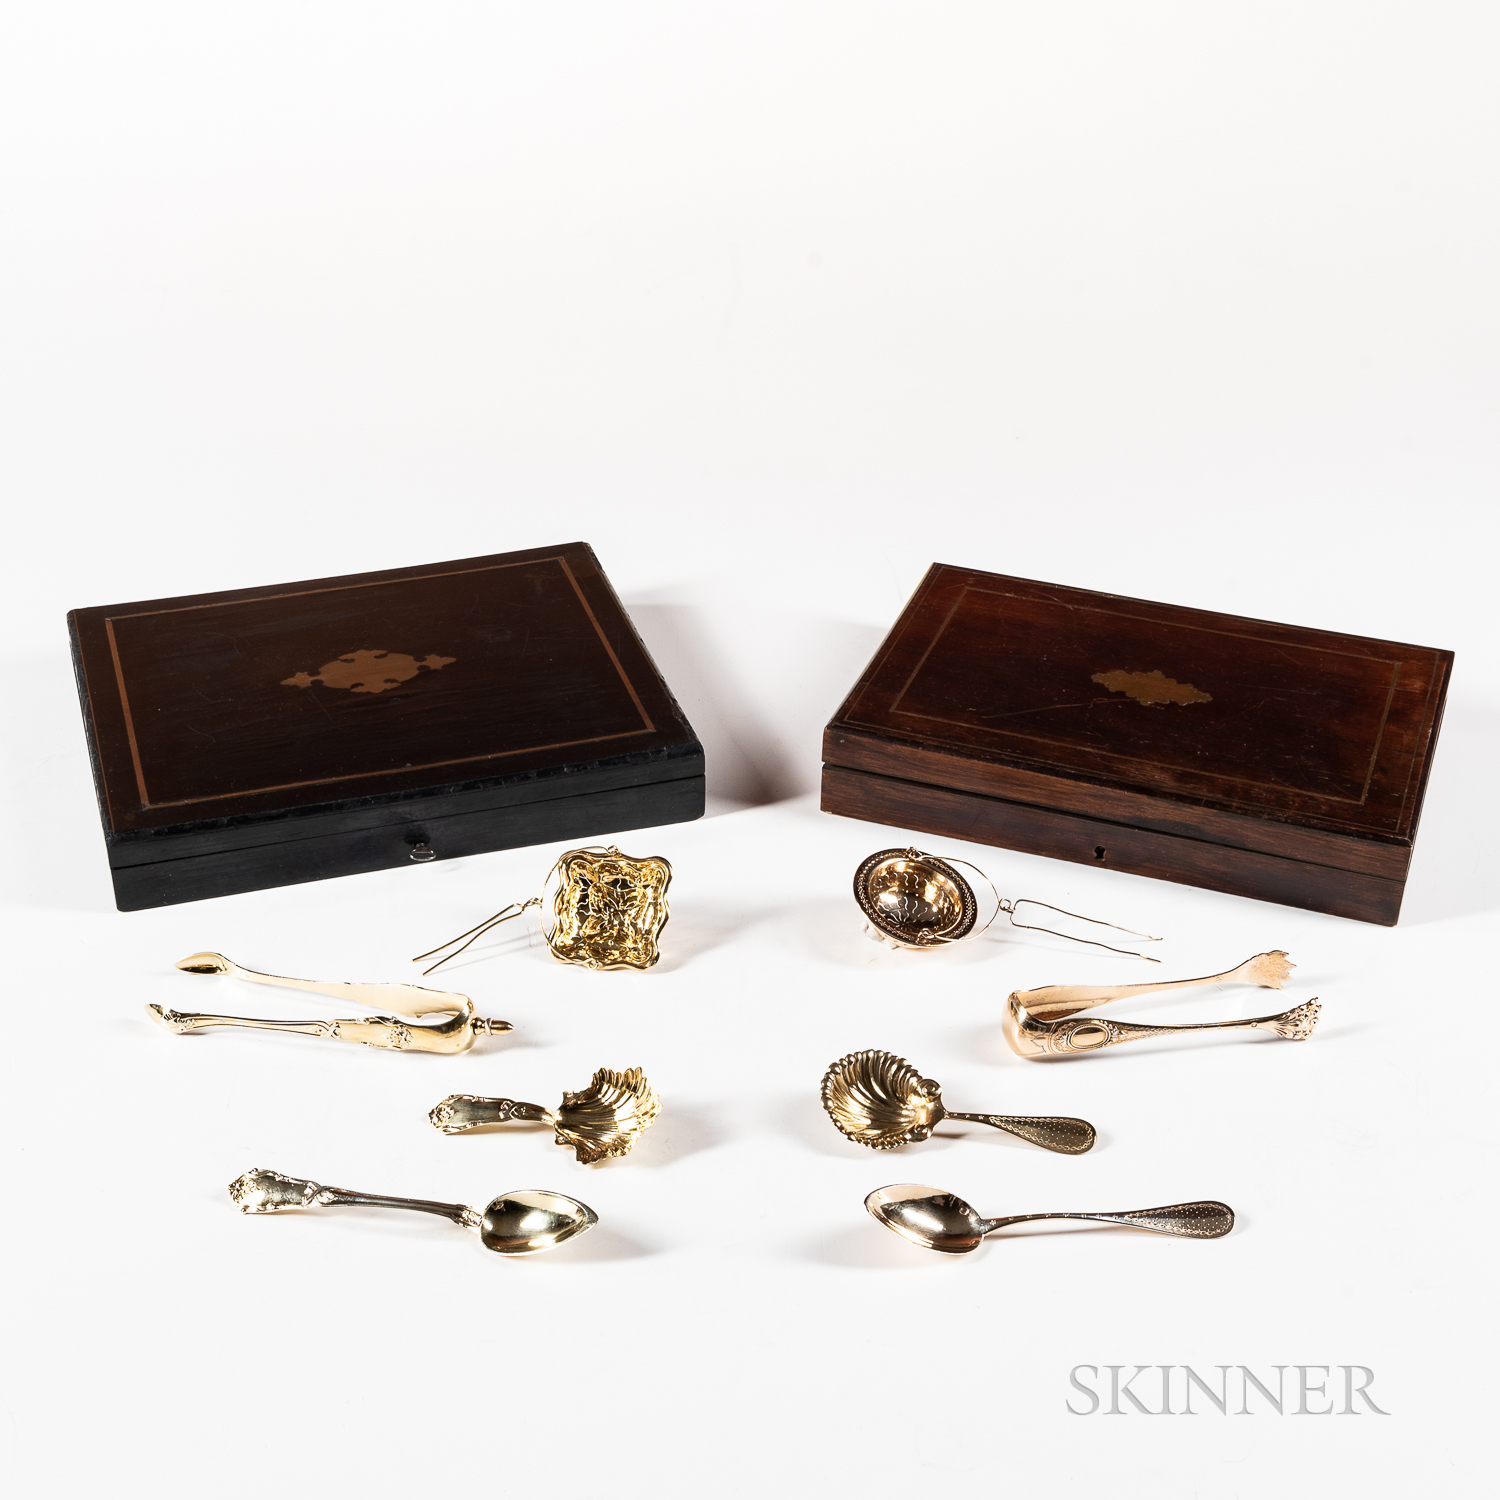 Two Cased French Vermeil .800 Silver Tea Flatware Sets